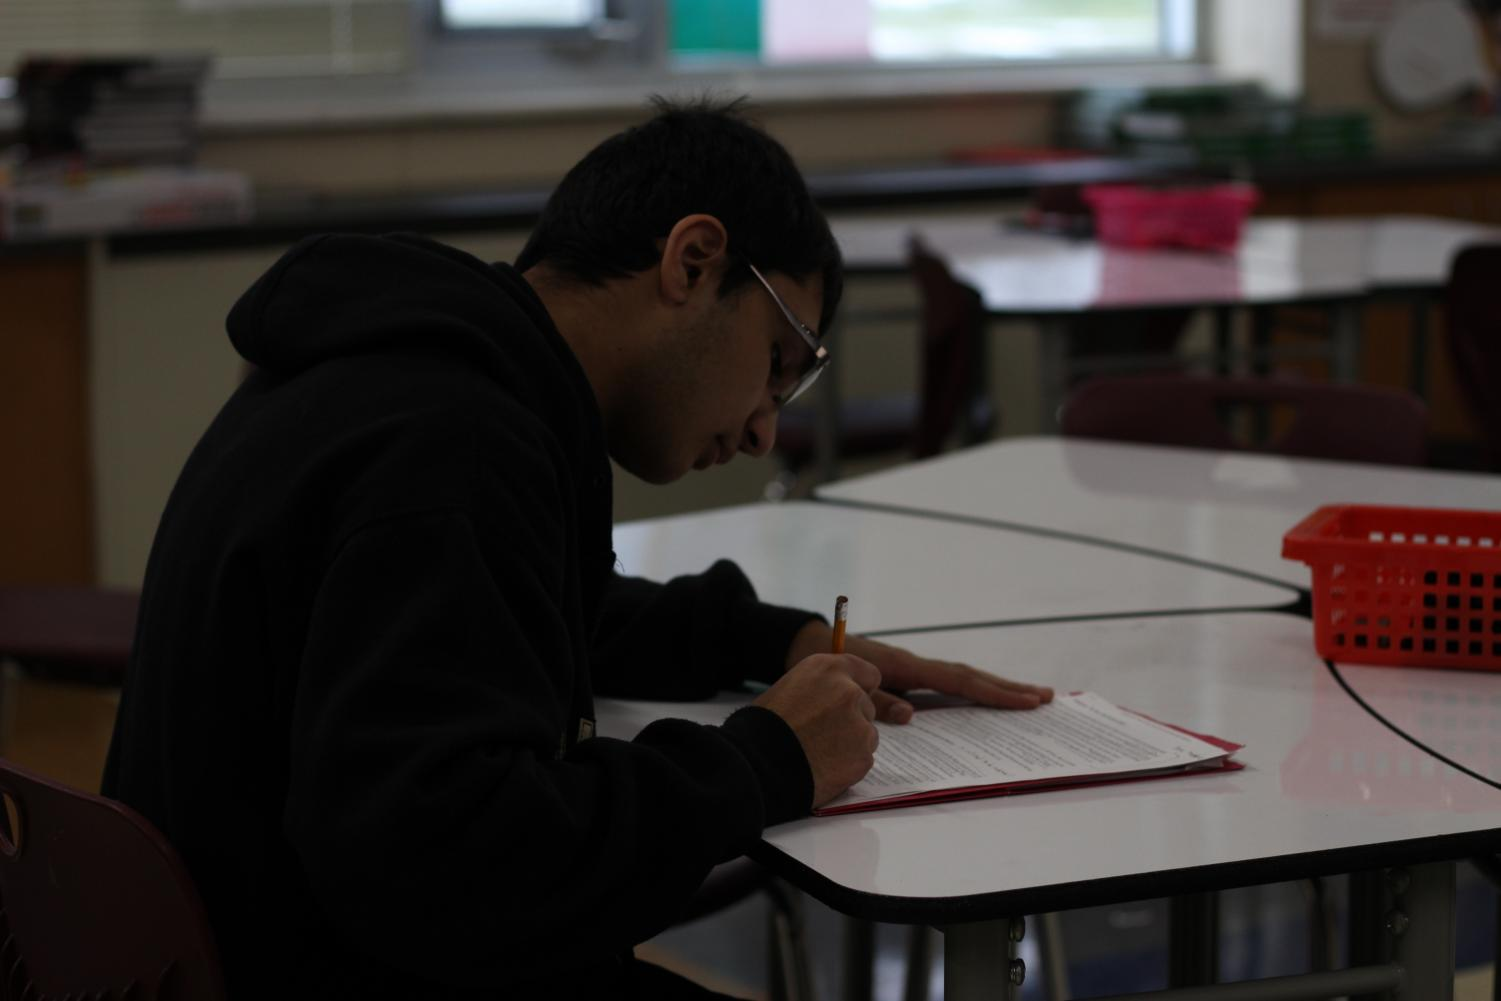 One of Mahmood's favorite subjects is history - his passion is fueled by his upbringing